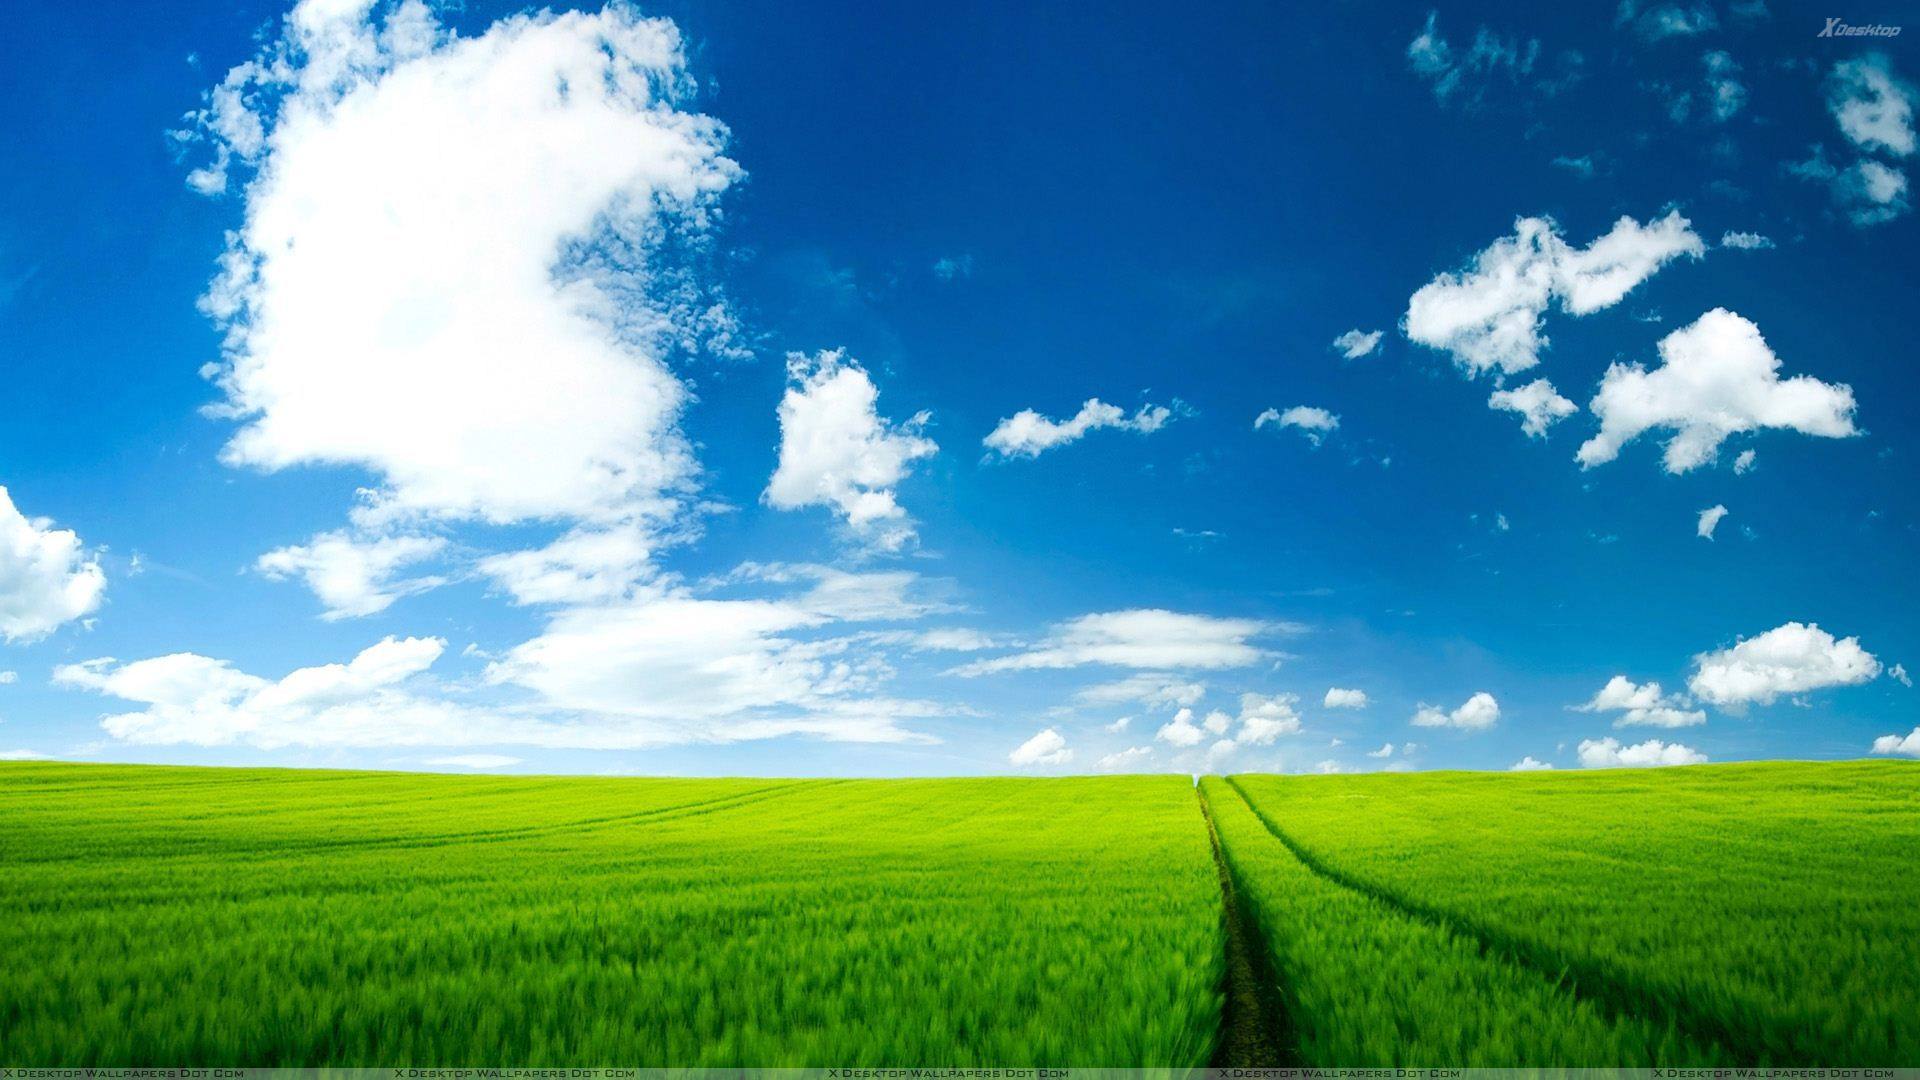 Cool Summer Green Fields Background Image